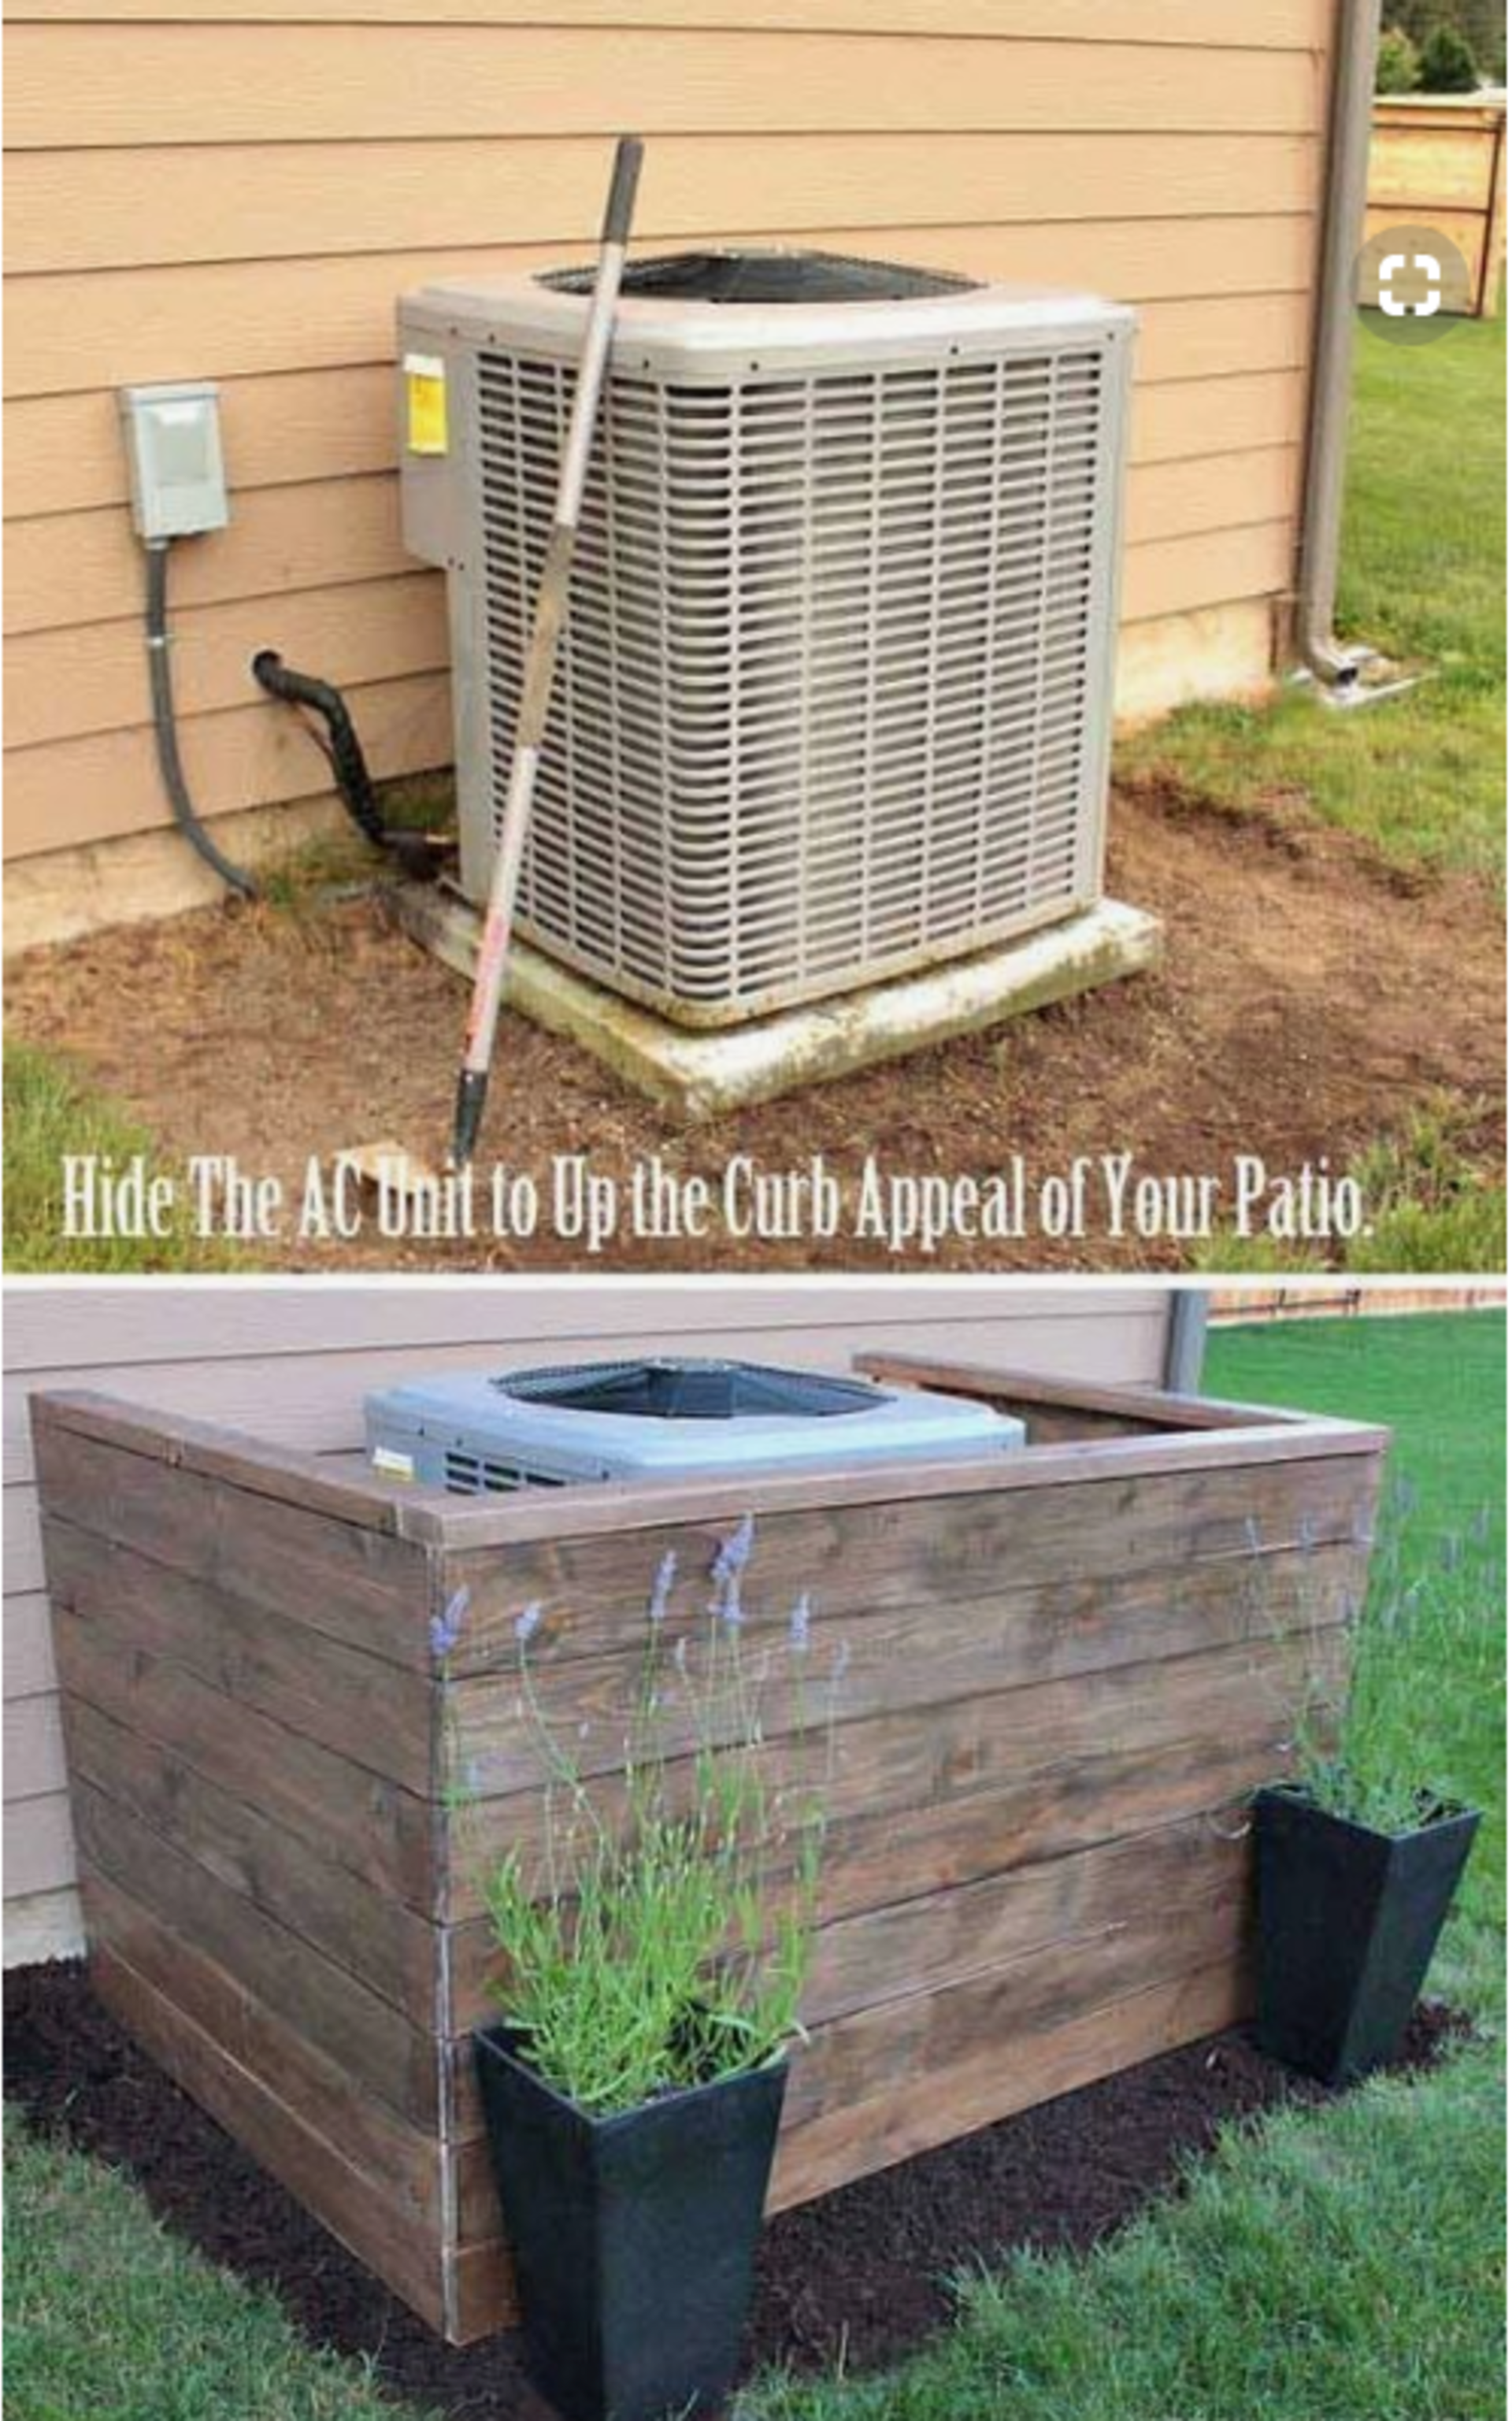 Hide Your A/C or Trash Containers